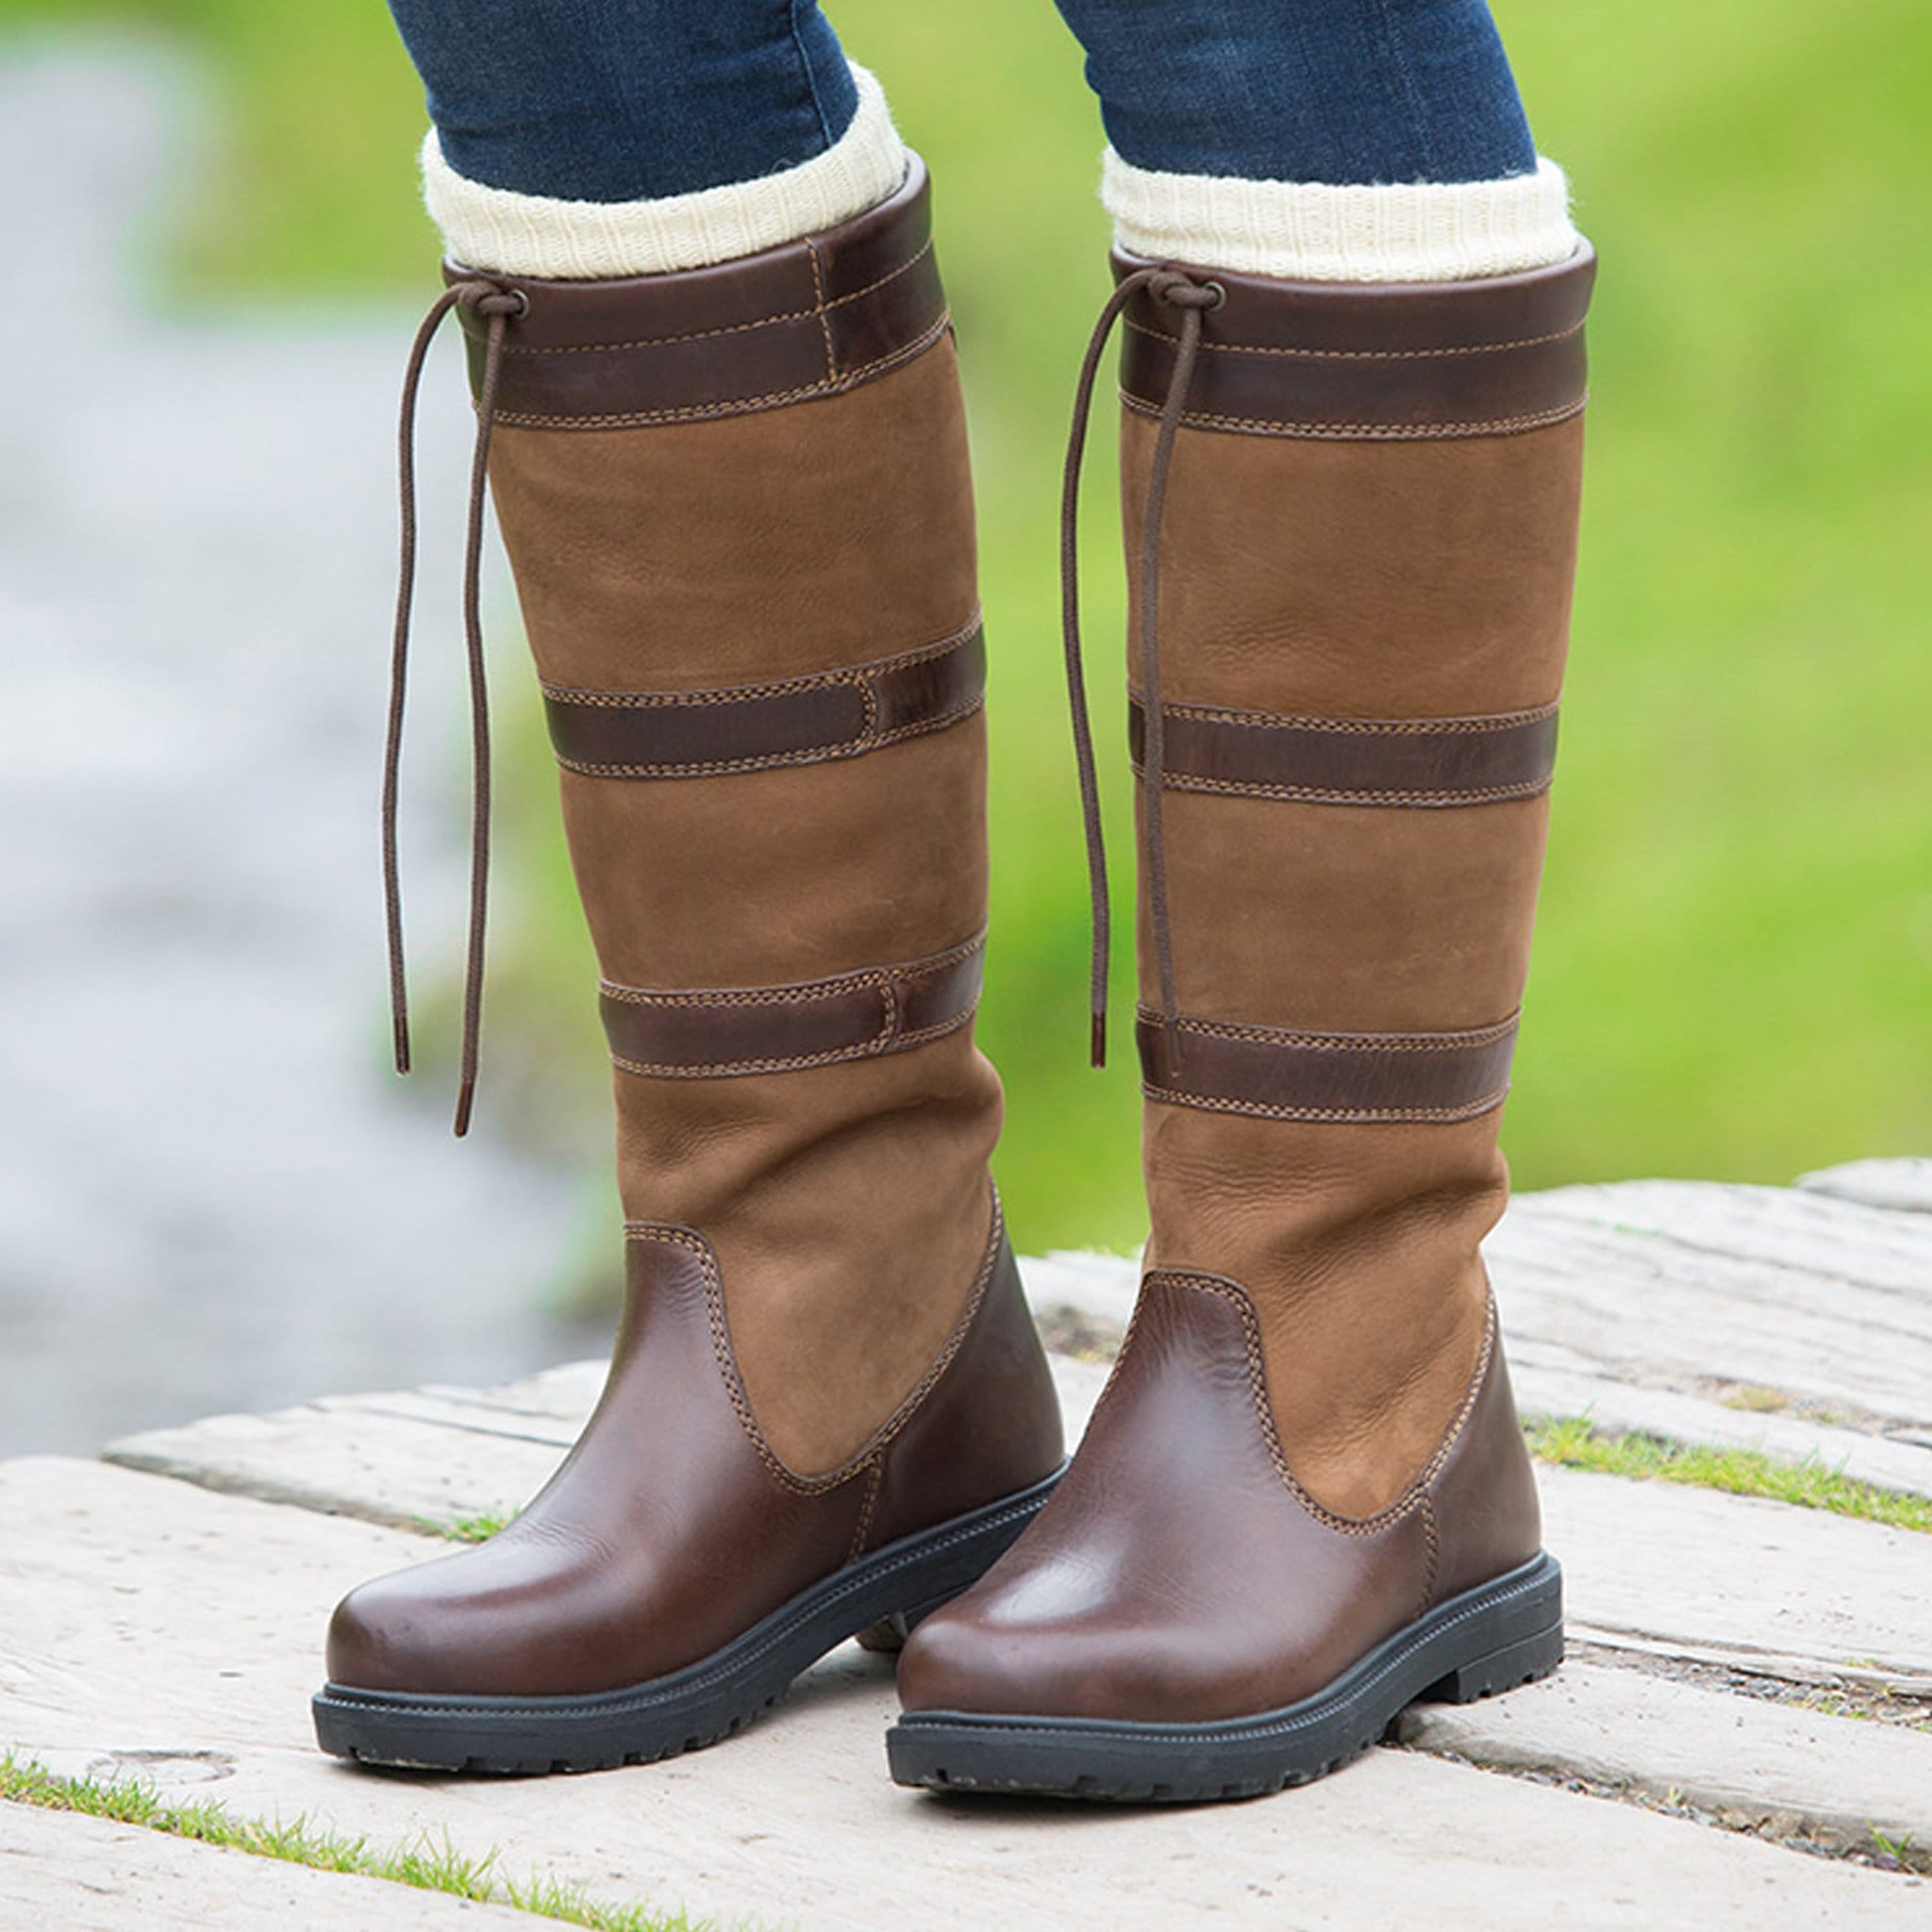 Shires Moretta Teo Country Boots 958 Brown